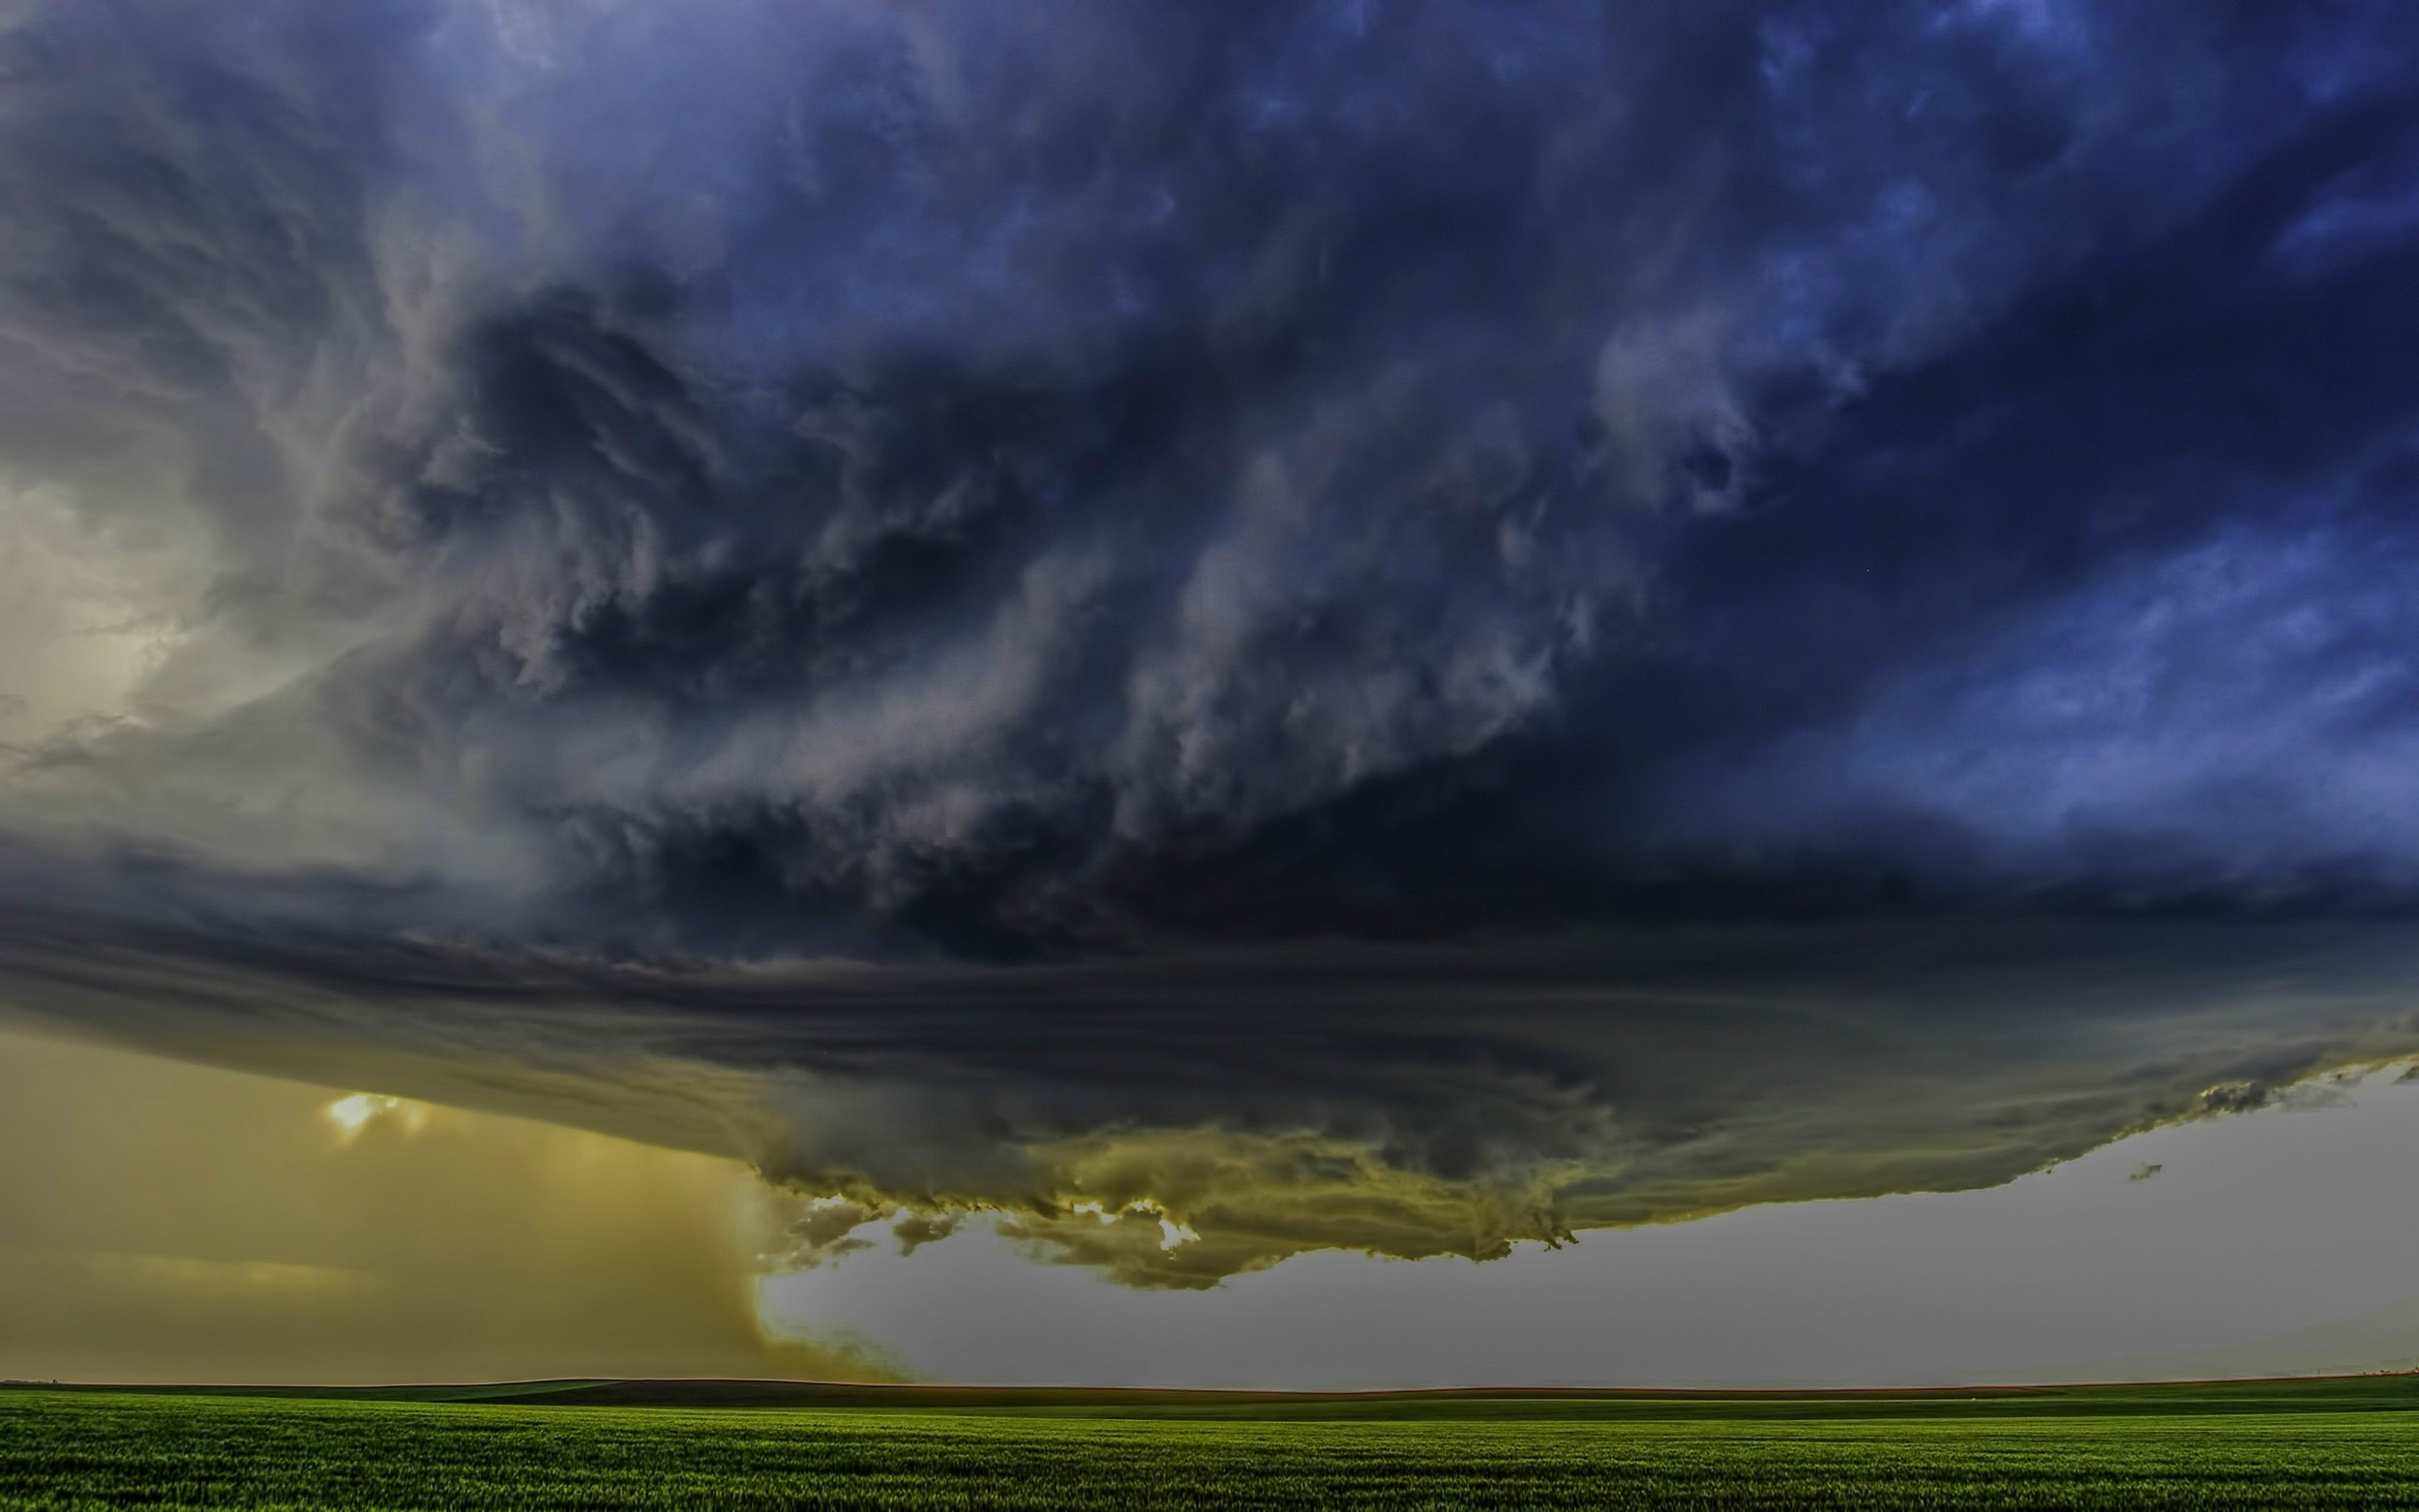 Download Fall Wallpaper For Laptops Nature Landscape Supercell Storm Clouds Field Wind